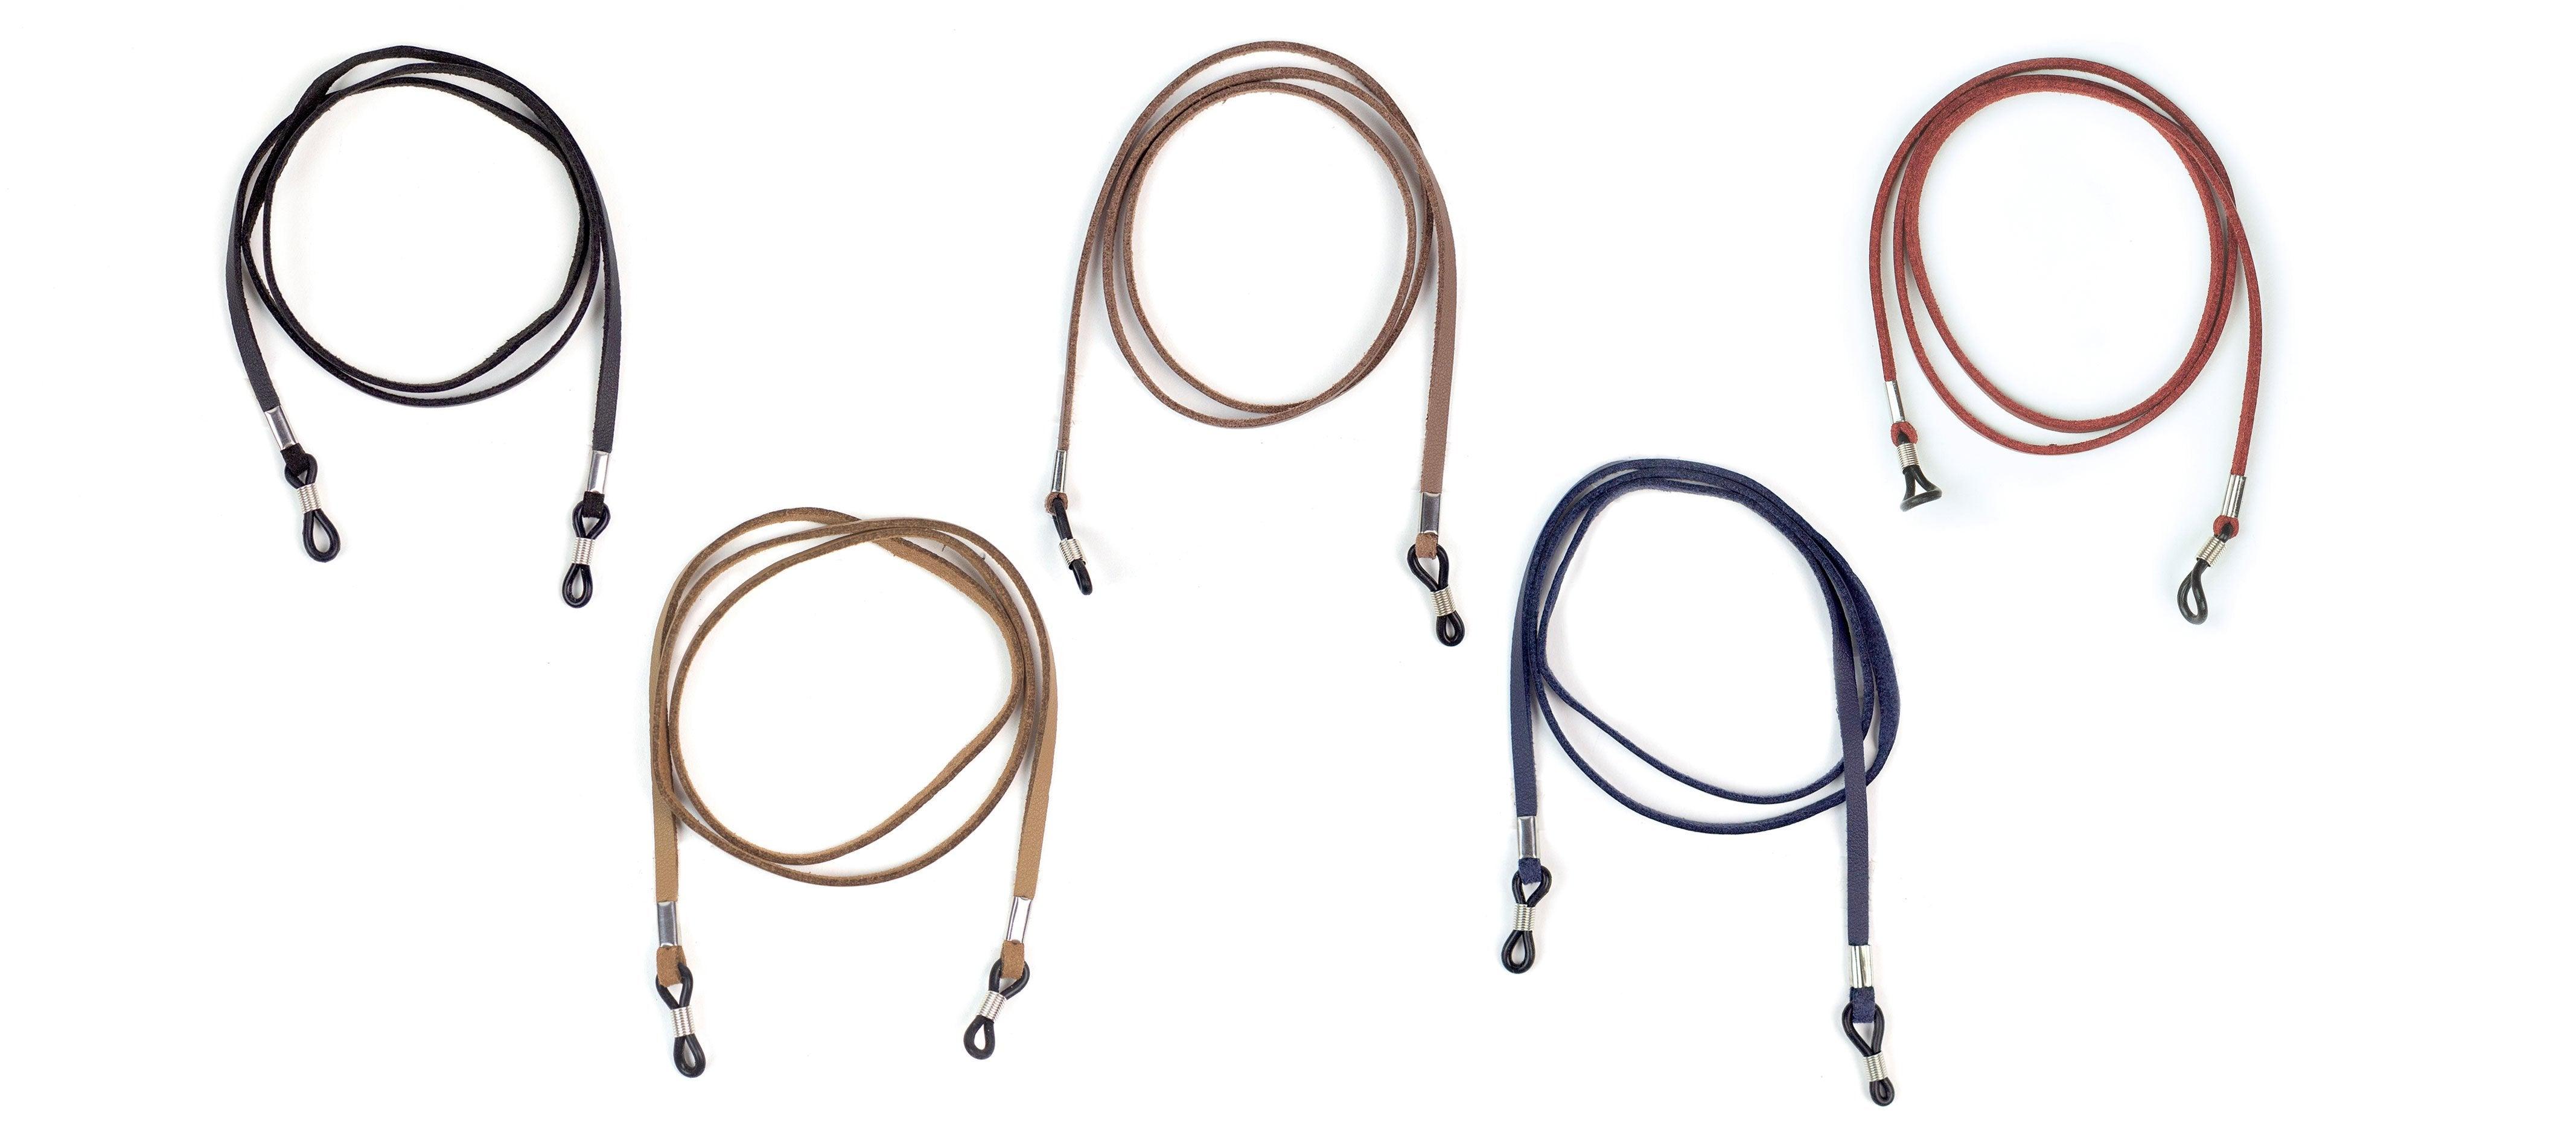 Peepers faux leather cords for reading glasses